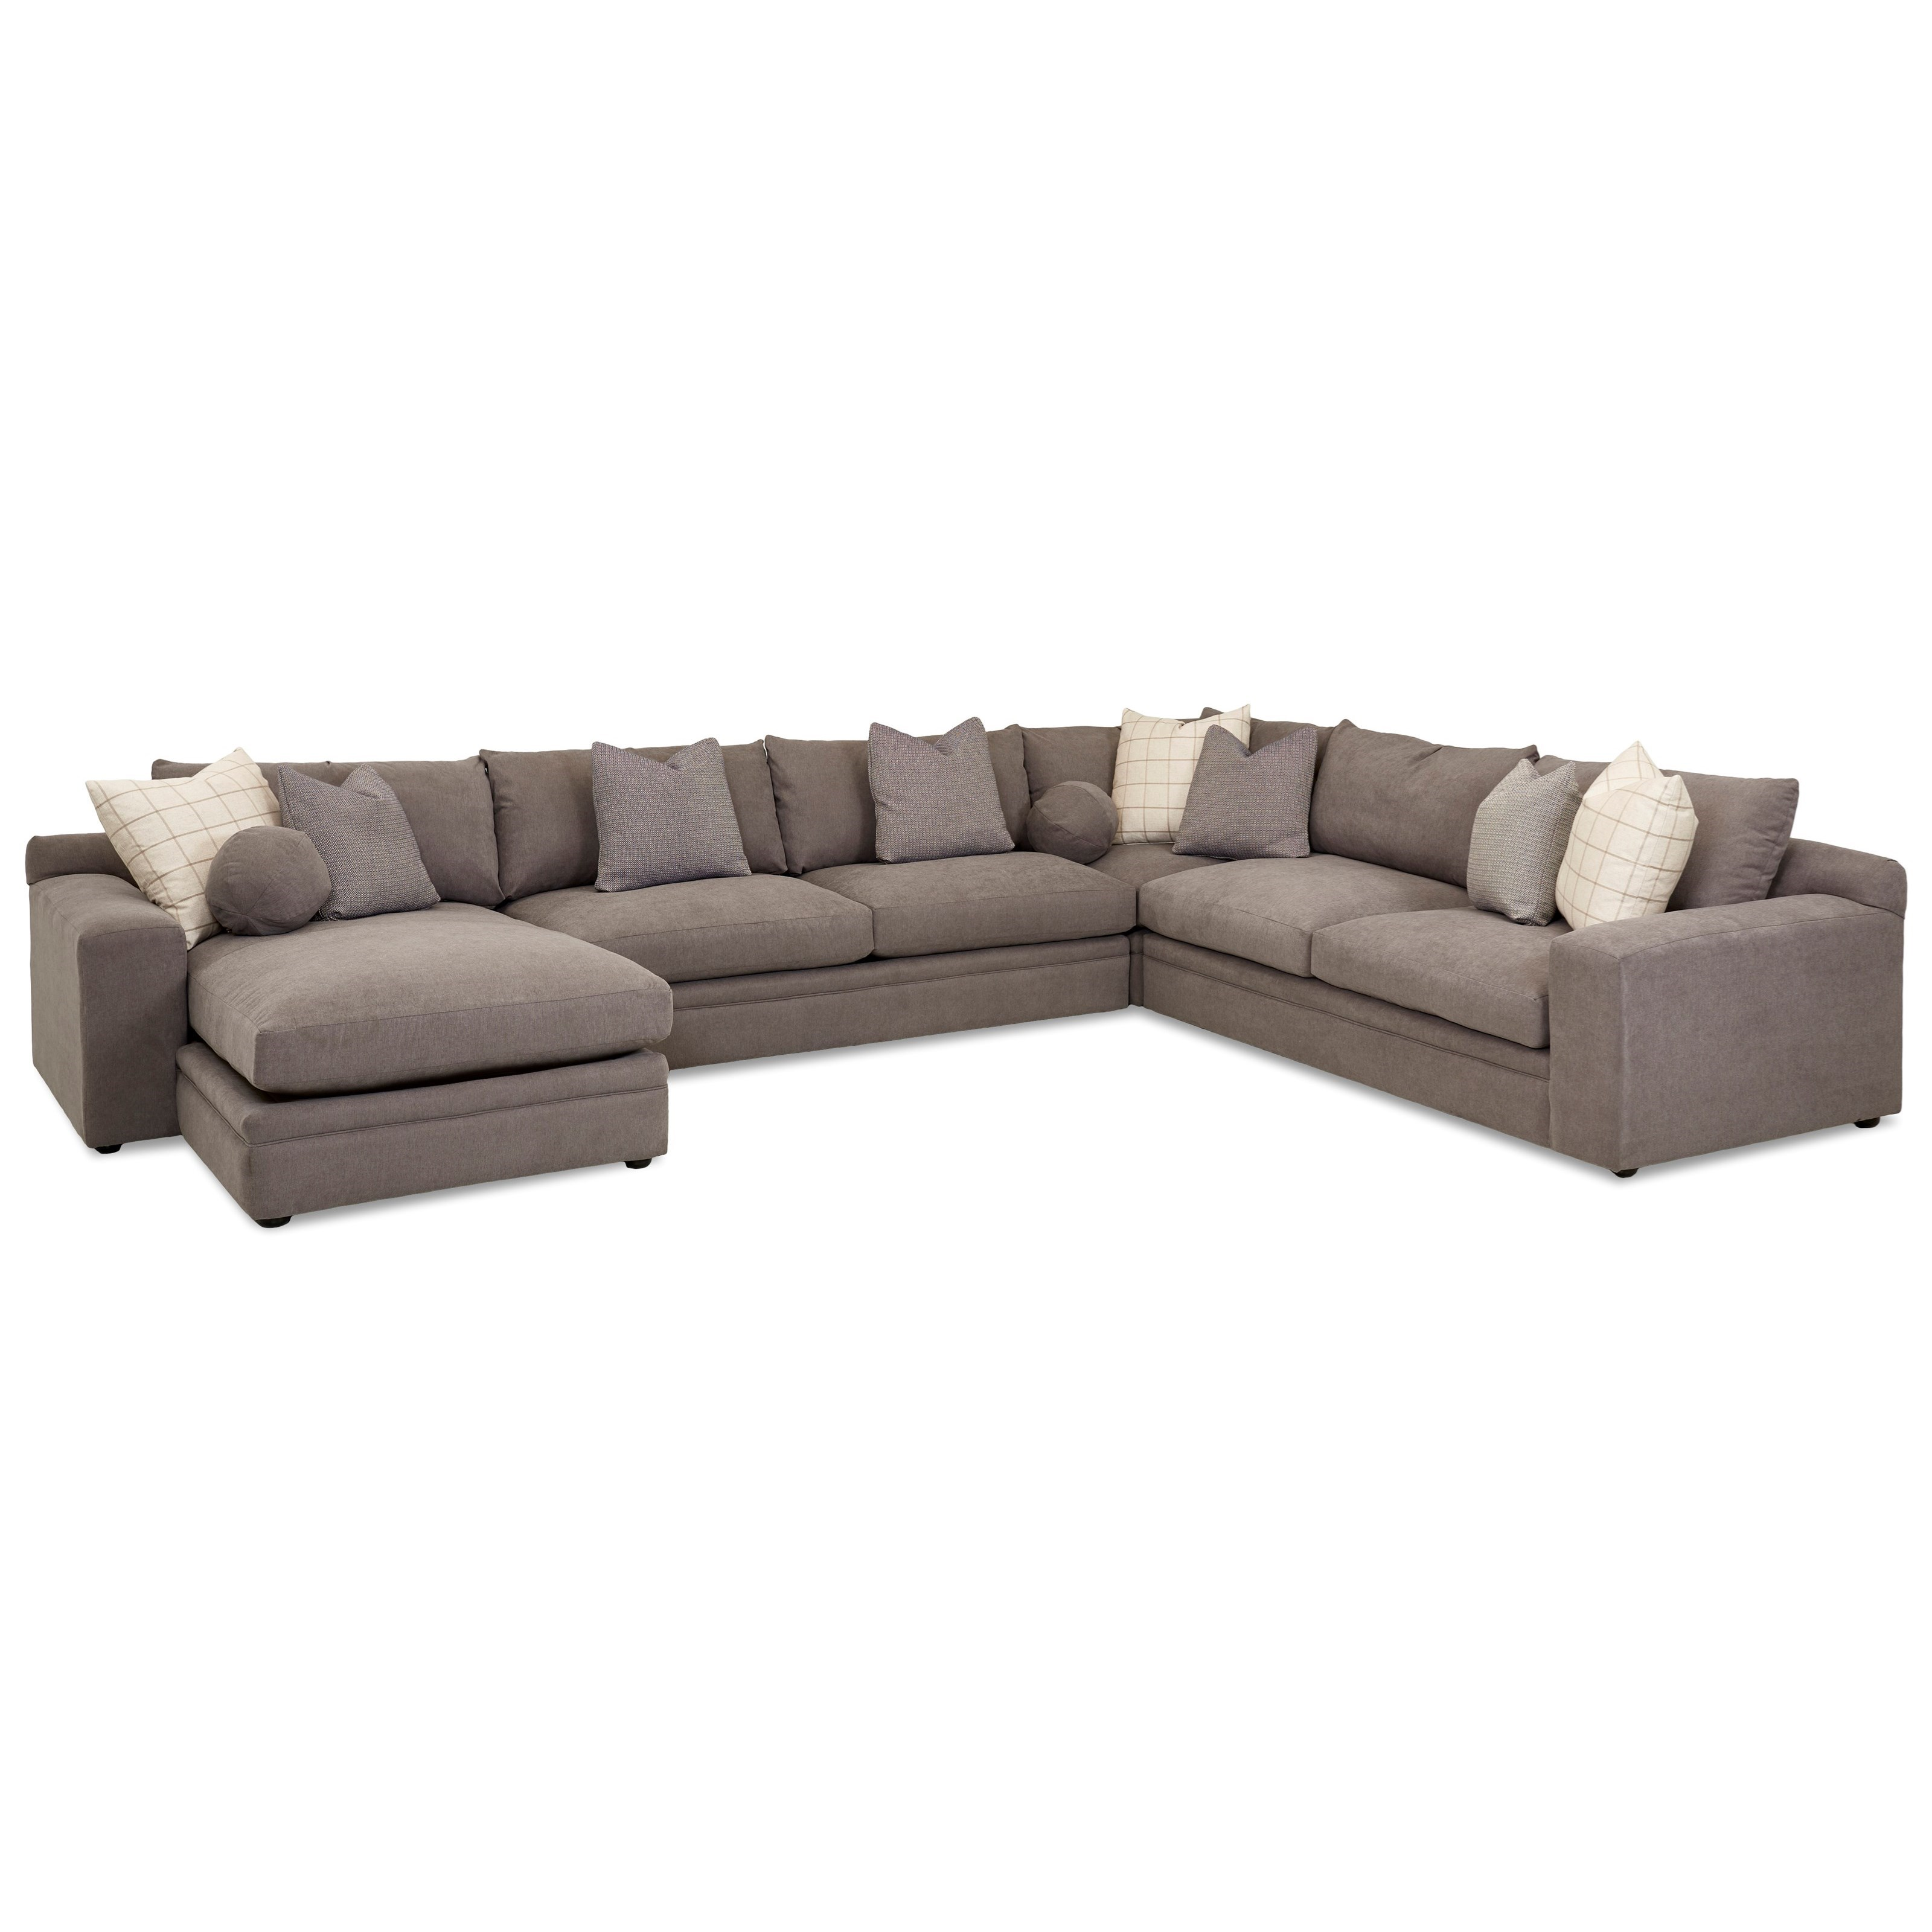 Casa Mesa 4 Pc Sectional Sofa w/ LAF Chaise by Klaussner at Northeast Factory Direct